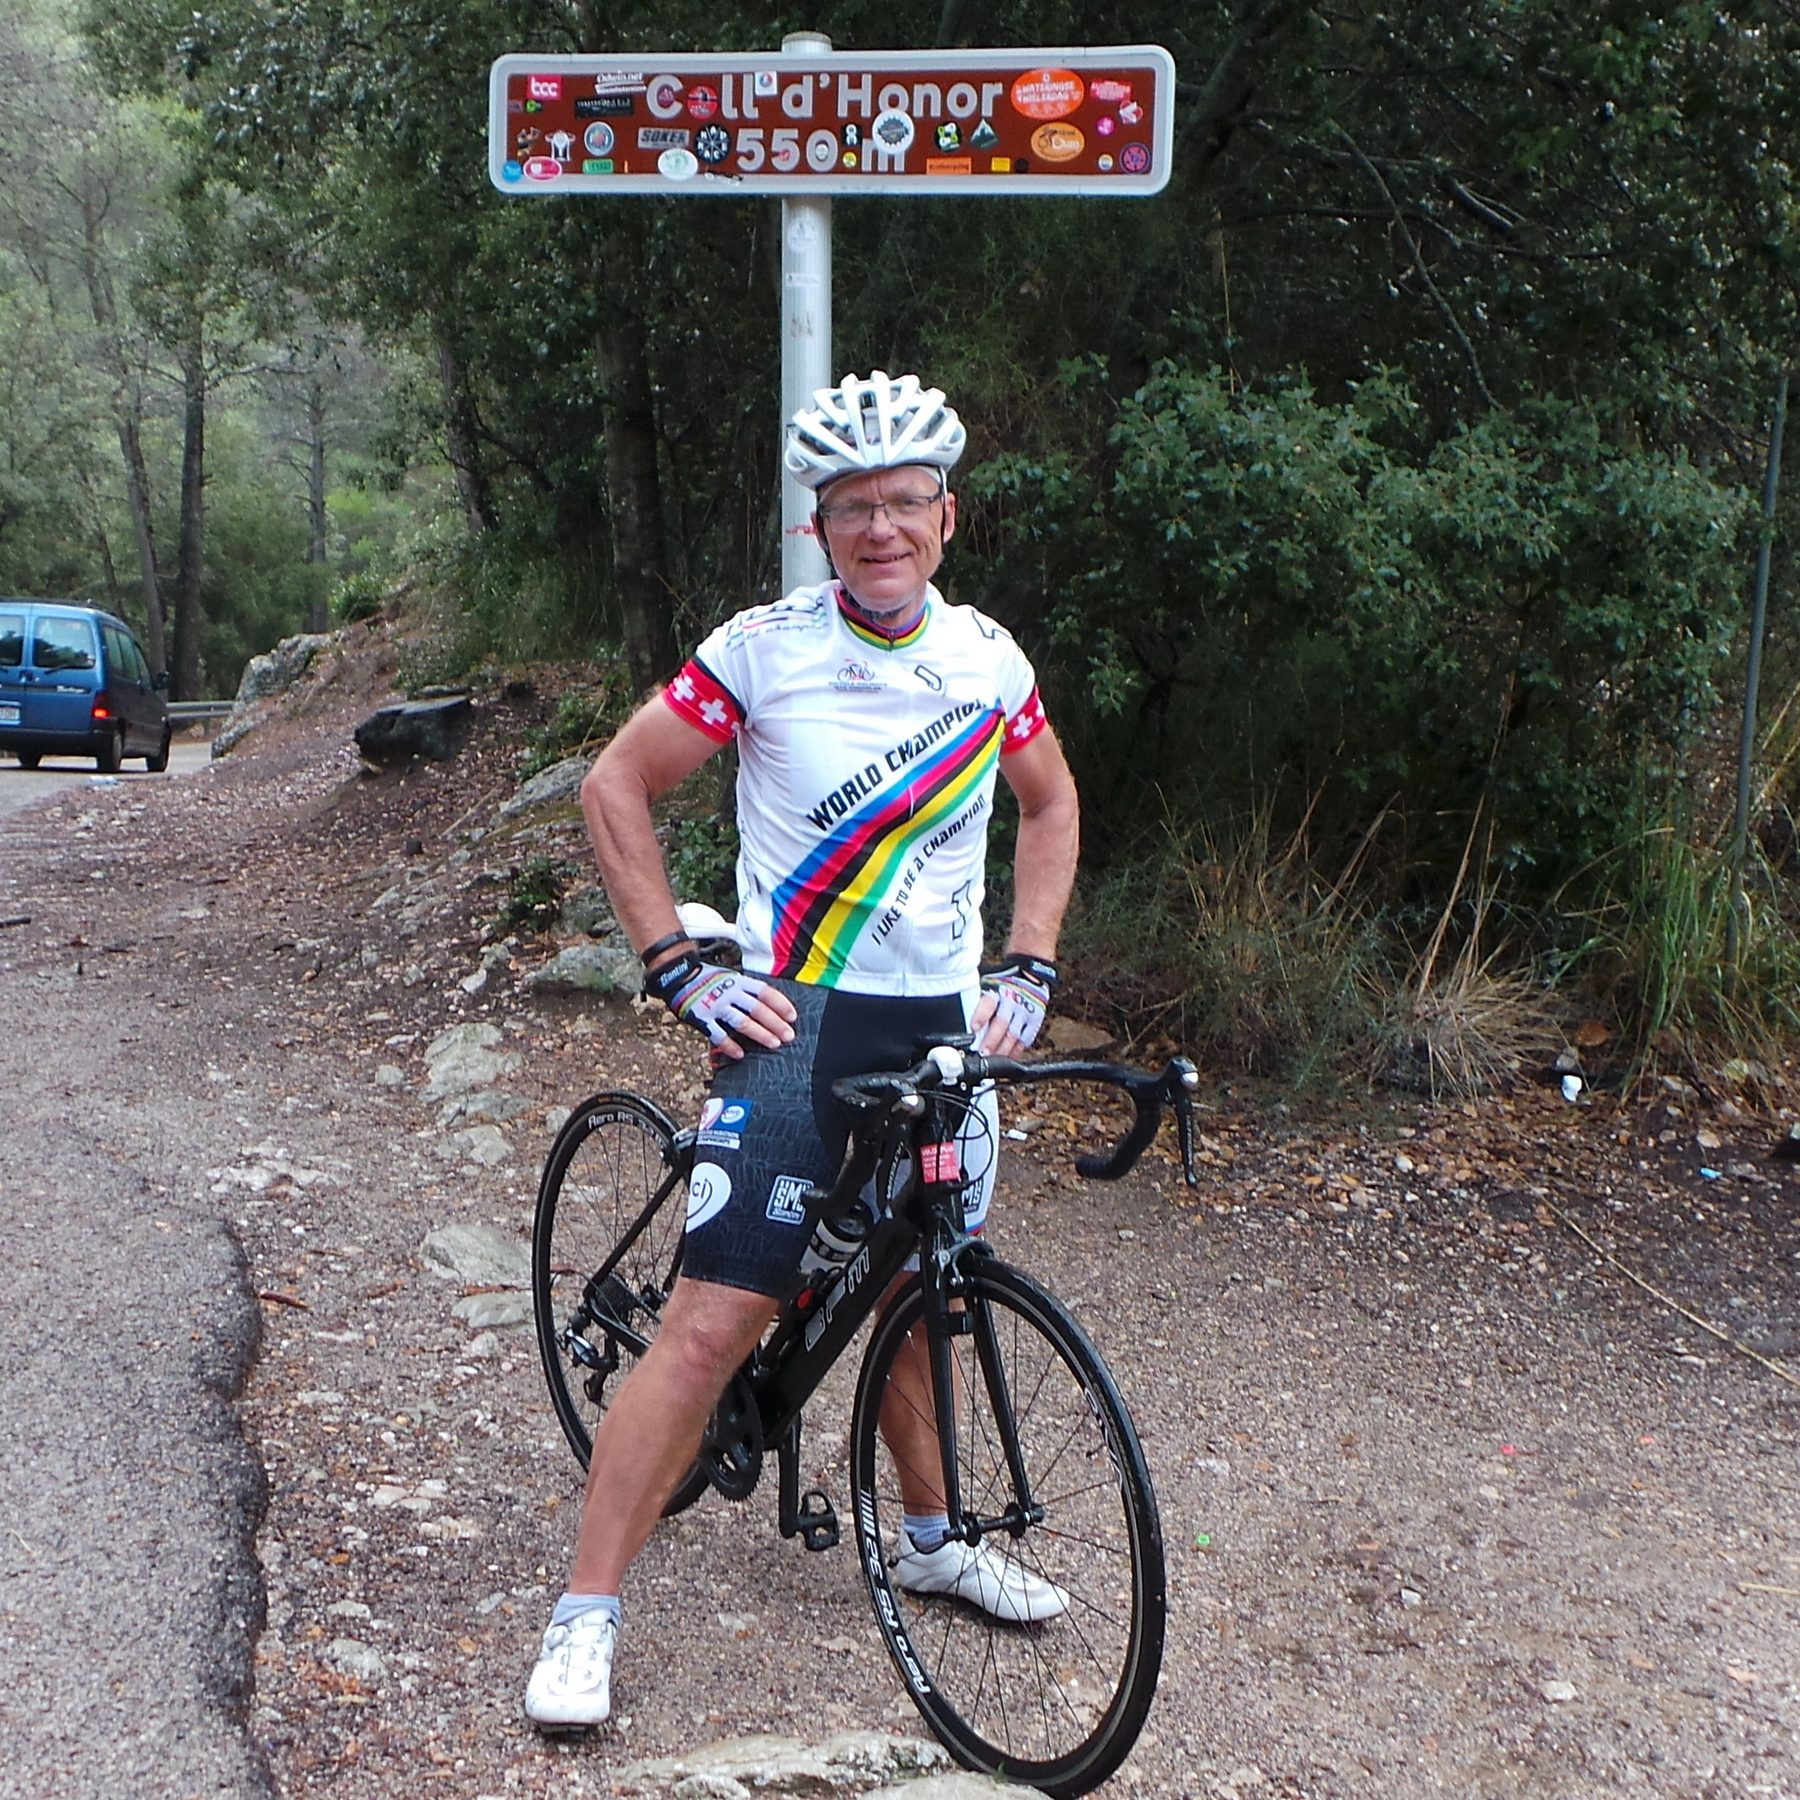 Col d'Honor - wet and cold